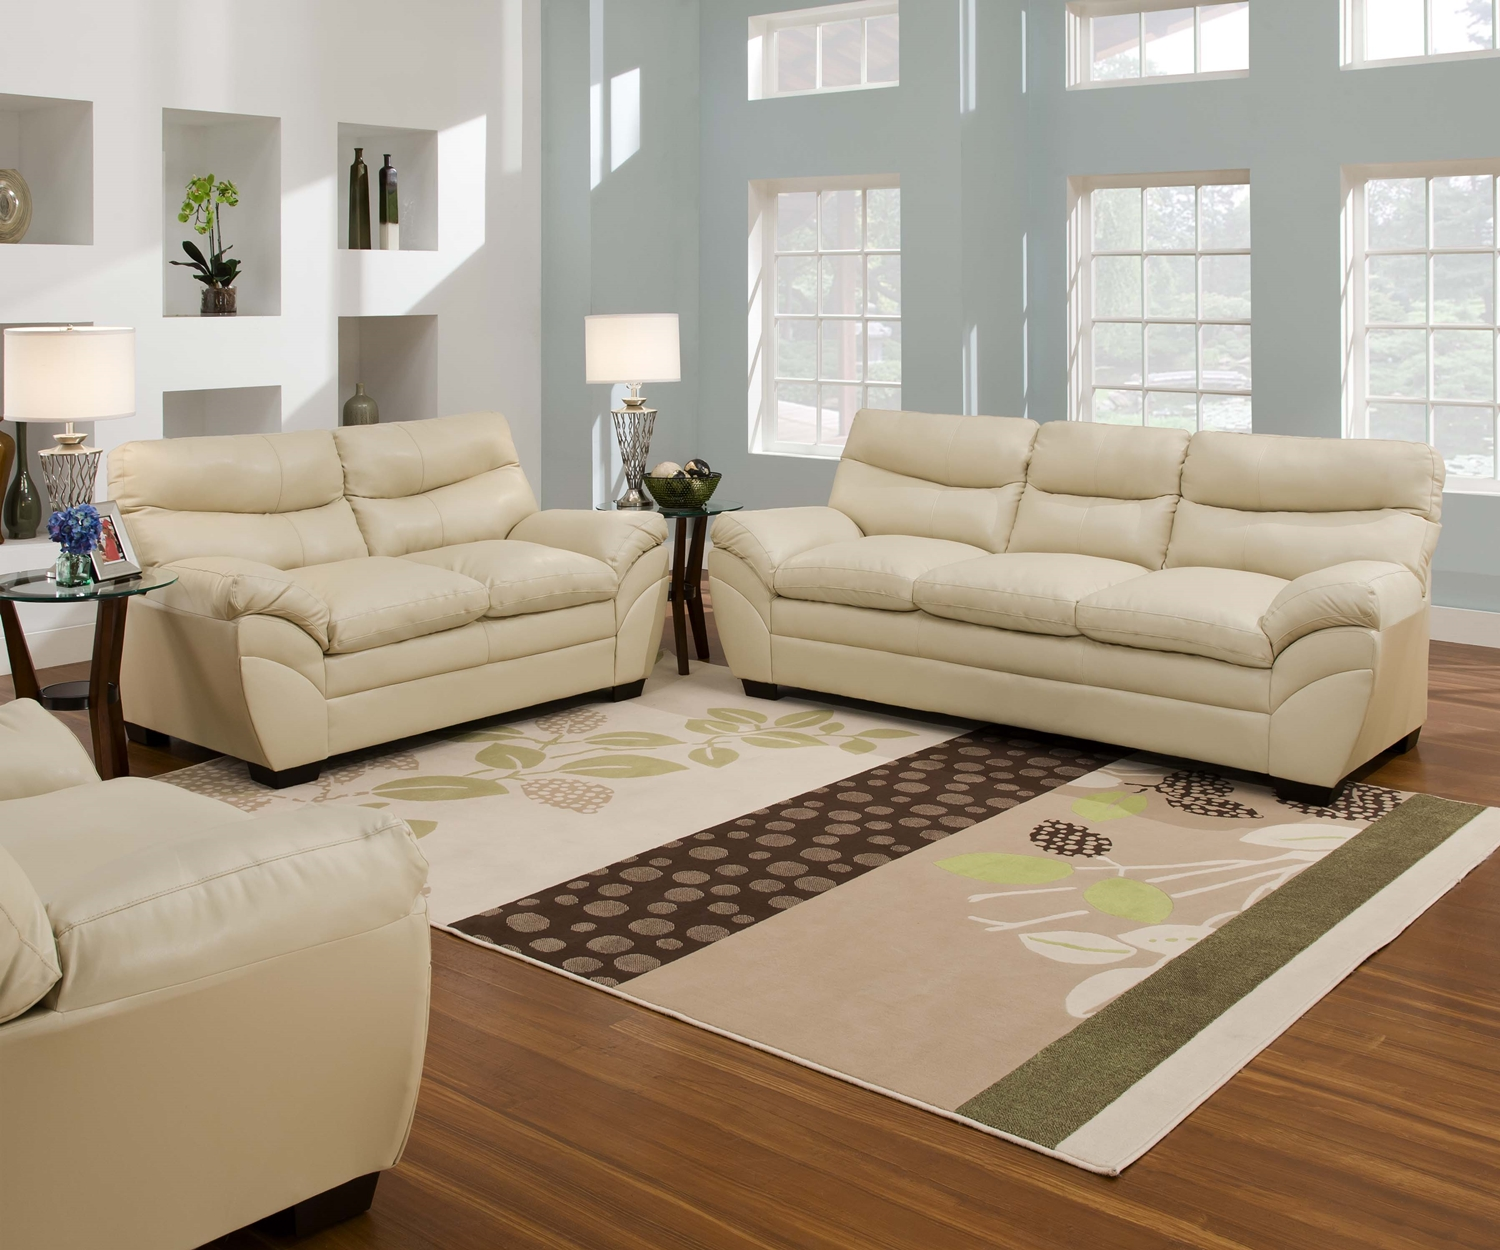 Living Room Farnichar Of Cream Living Room Furniture Modern House